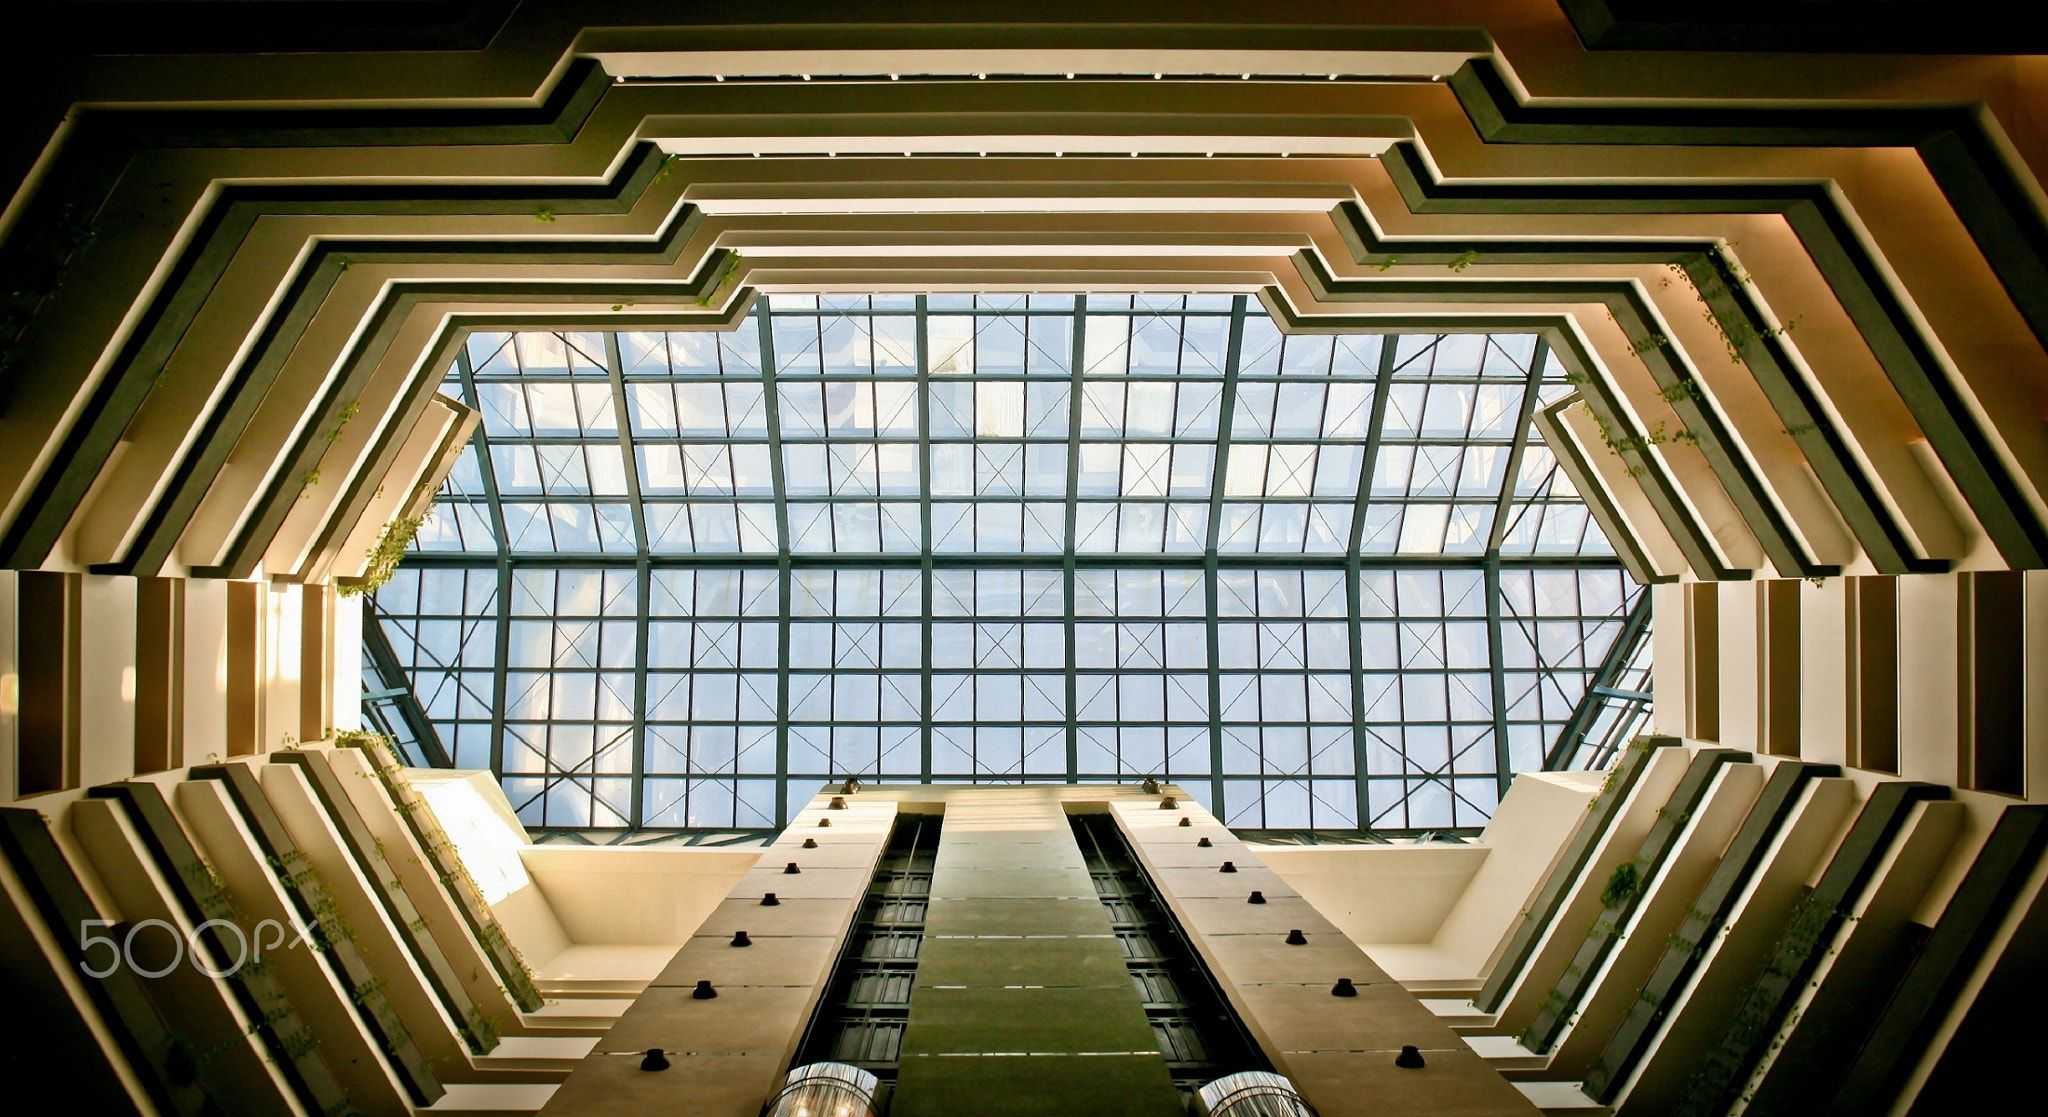 H10 - Looking up while drinking my coffee in the lobby bar, I noticed a glass ceiling with interesting vectors, lines and architecture.. Enjoy!